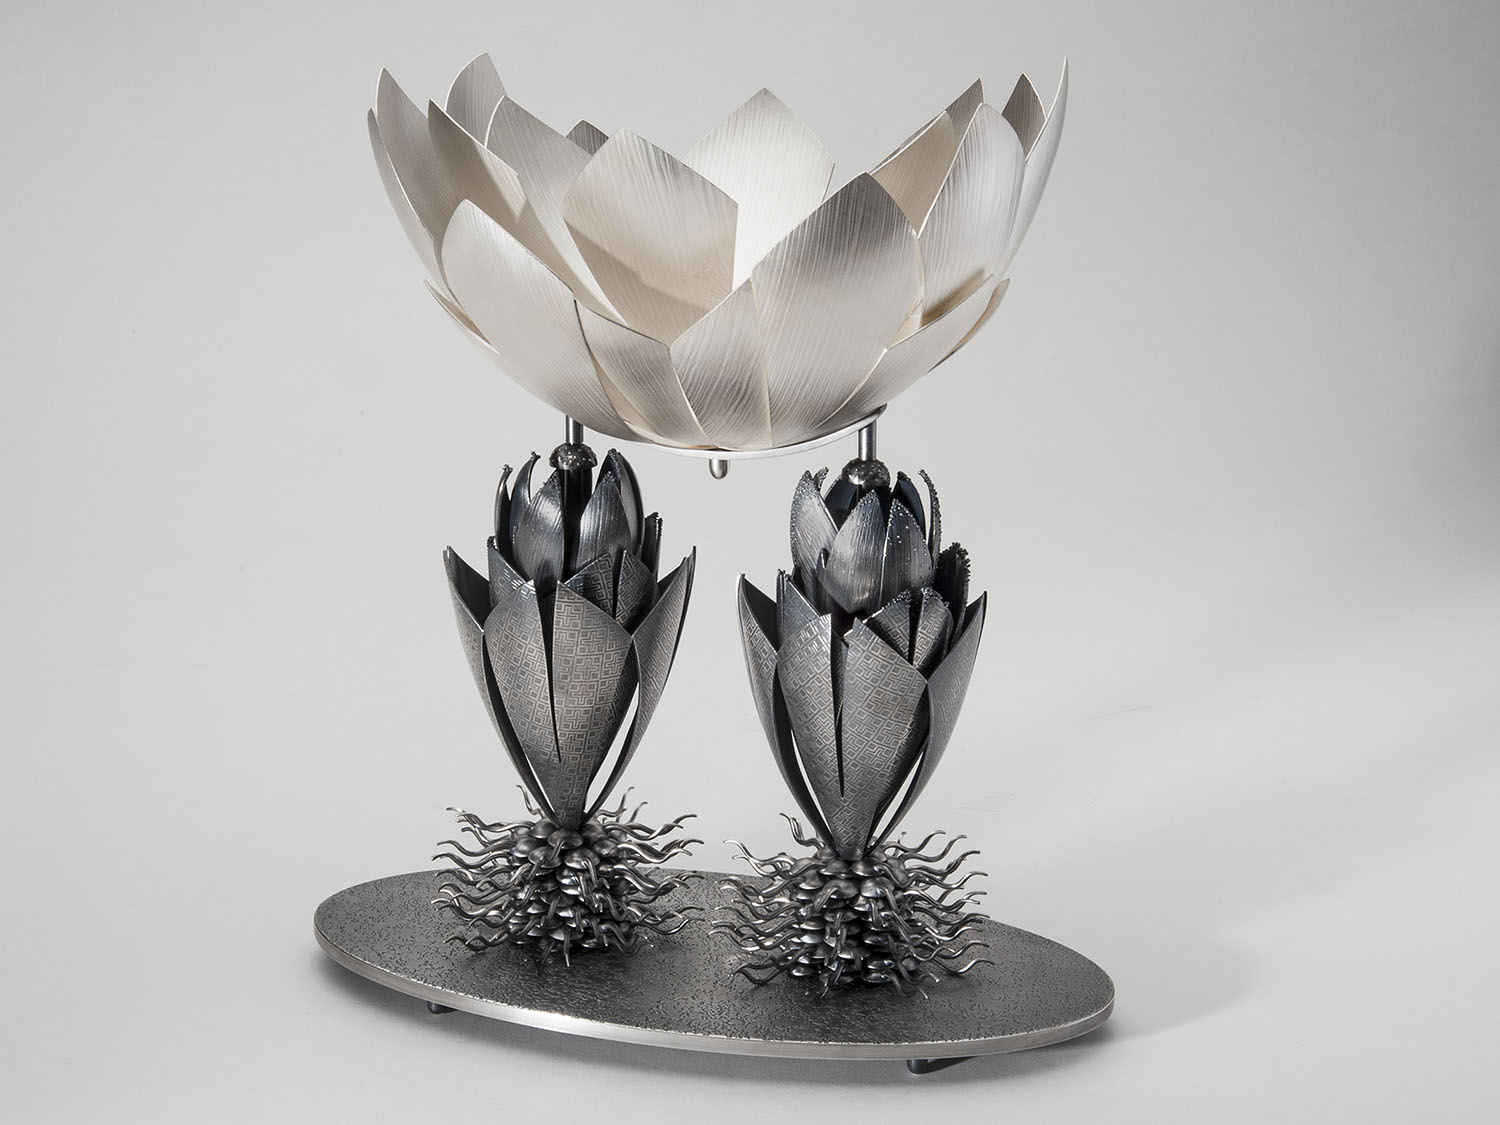 Corbeille  |  2015  |  sterling silver, bronze, silver plate  |  13.5 x 12 x 6 inches